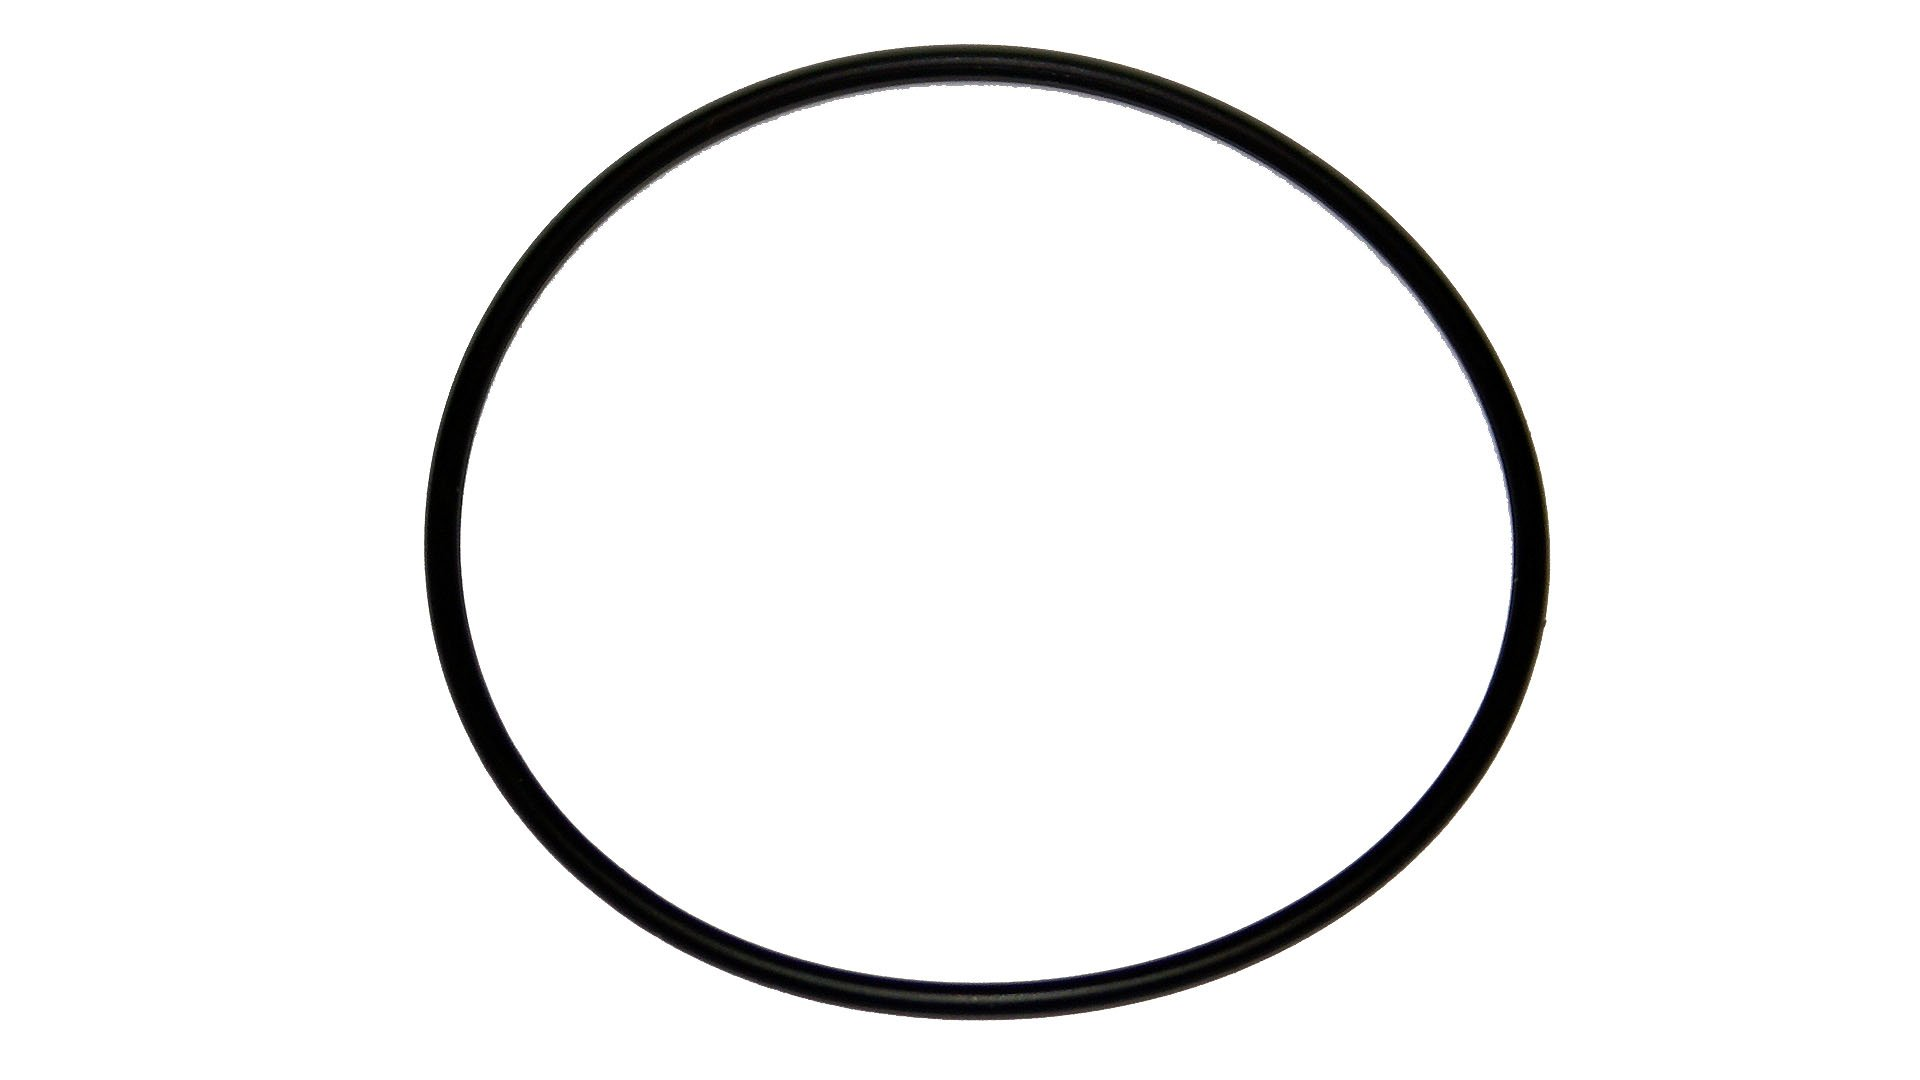 Sterling Seal and Supply (STCC) ORVT343 Viton Number-343 Standard O-Ring, Fluoropolymer Elastomer, 70 Durometer Hardness, 3-3/4'' ID, 4-1/8'' OD by Sterling Seal & Supply, Inc. (STCC)